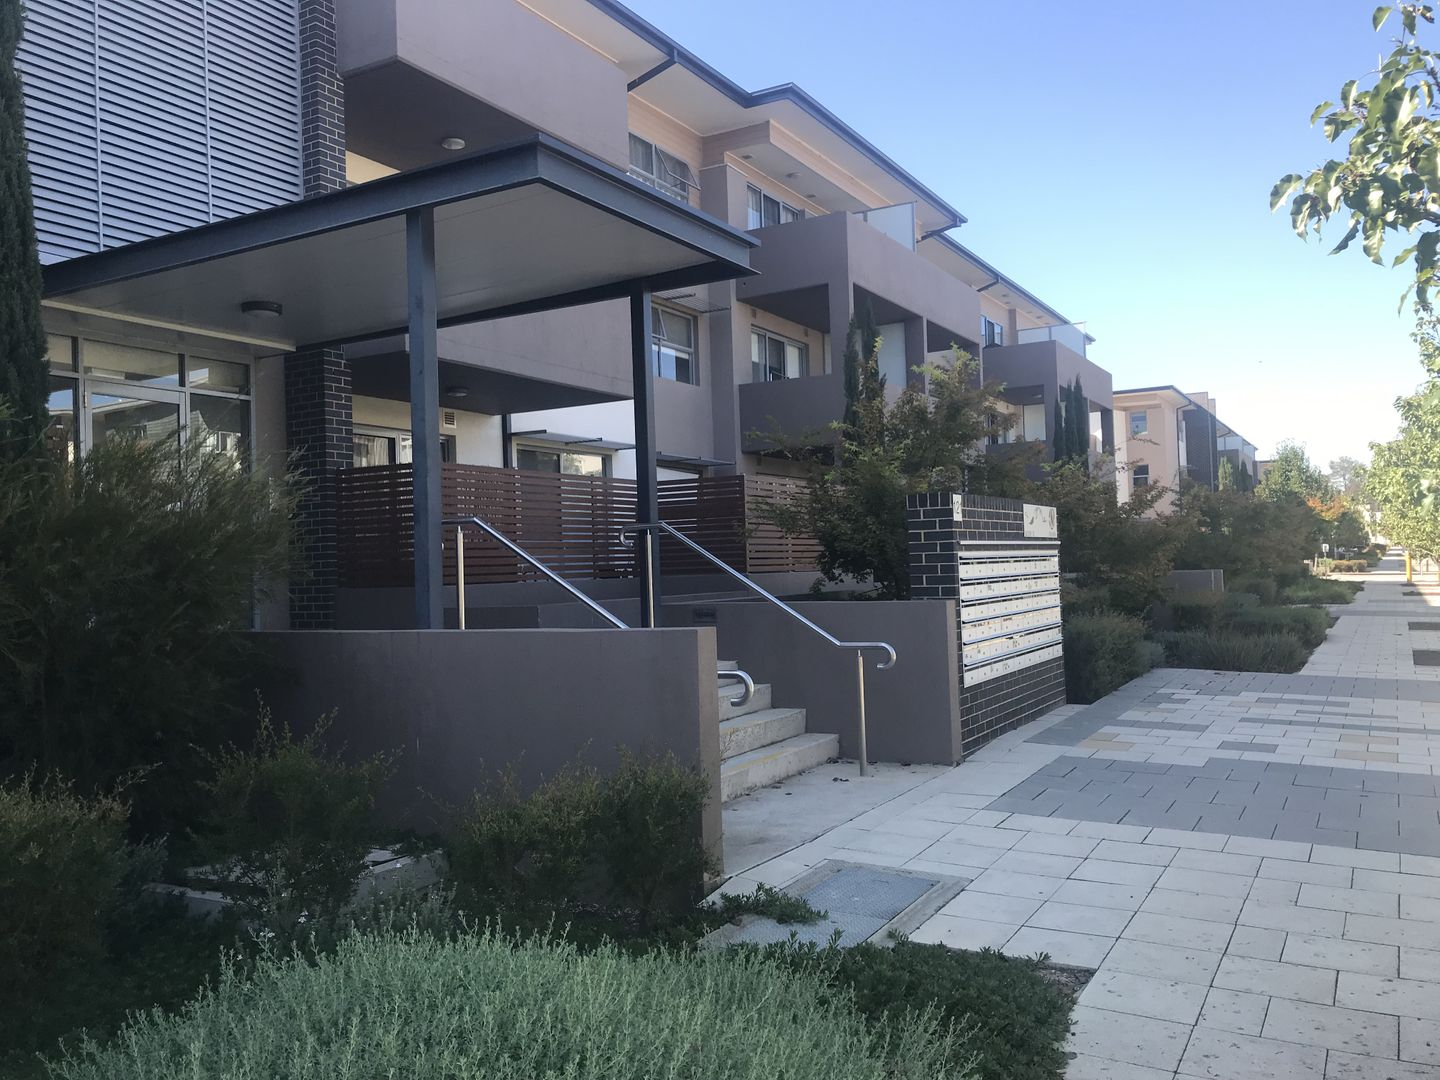 118/121 Easty Street, Phillip ACT 2606, Image 0